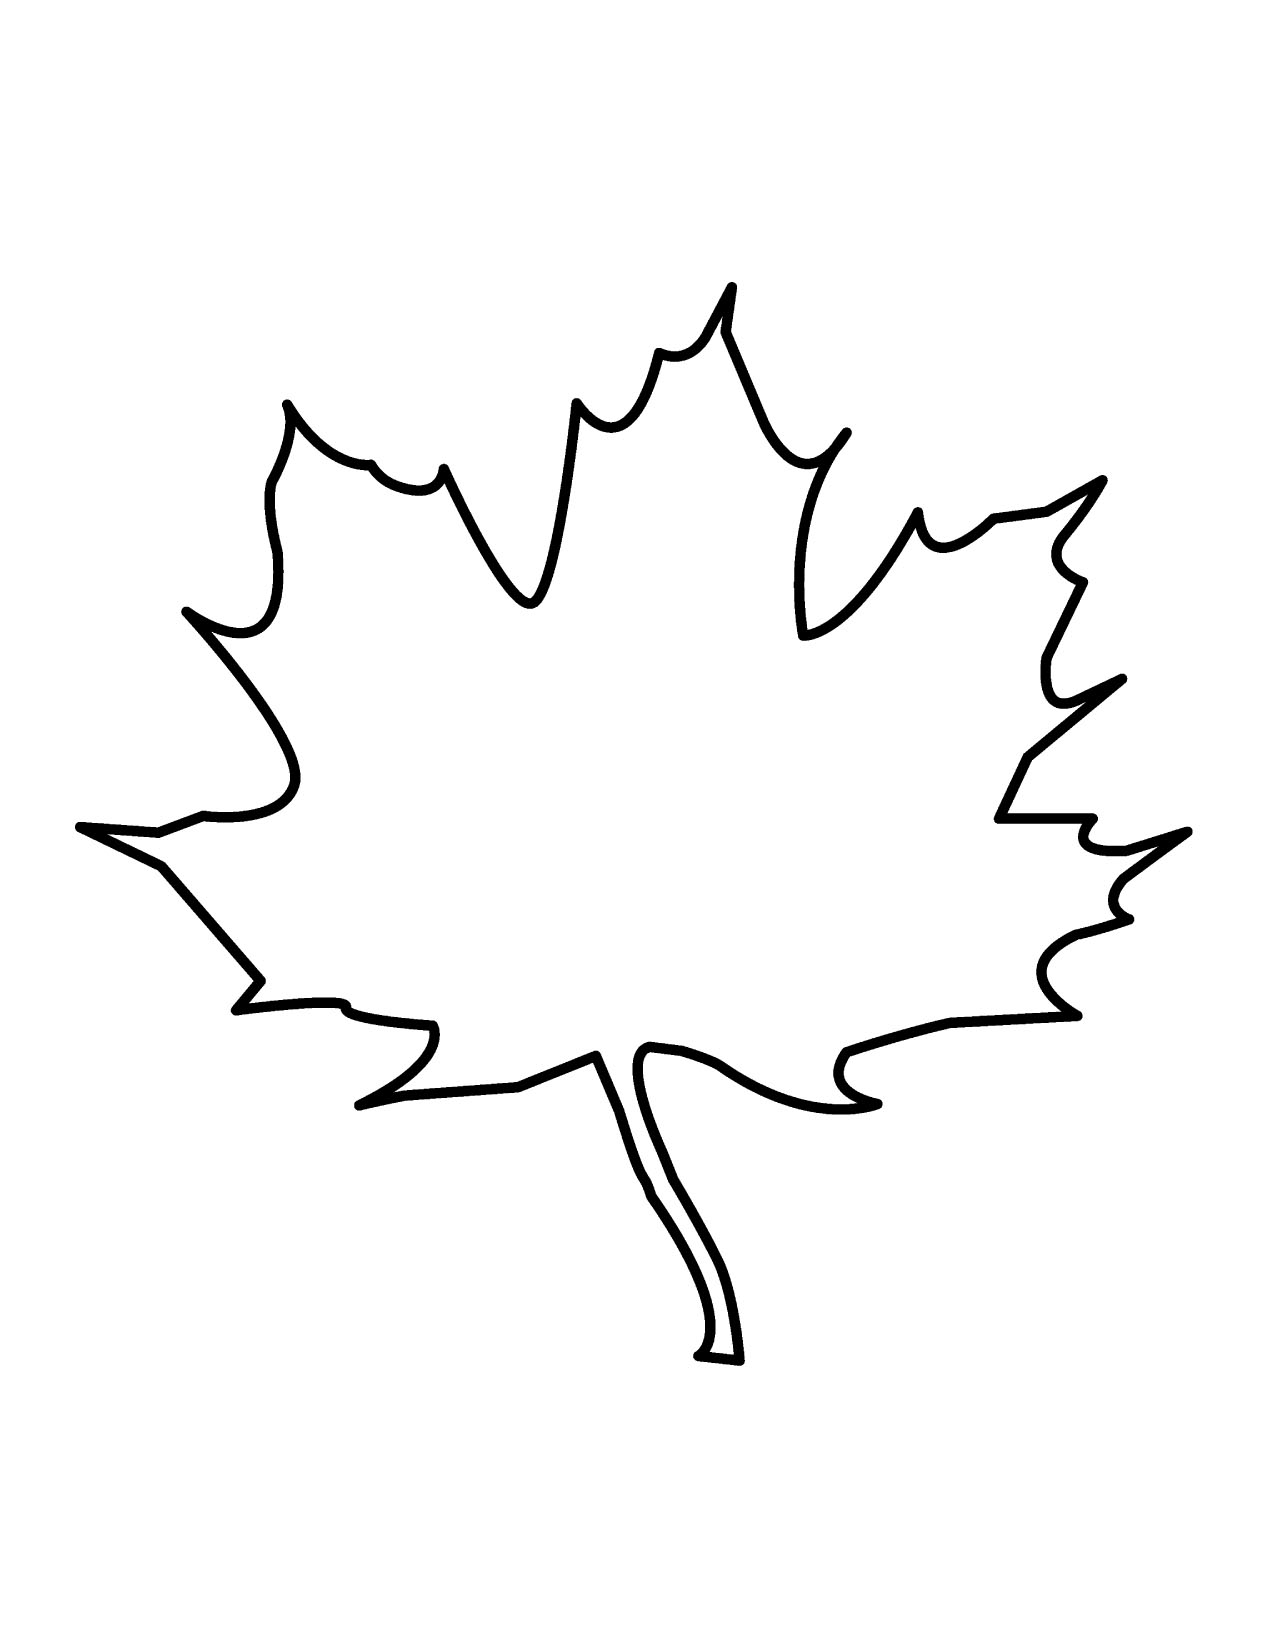 Leaf Outline Clip Art Black And White Cl-Leaf Outline Clip Art Black And White Clipart Best-10